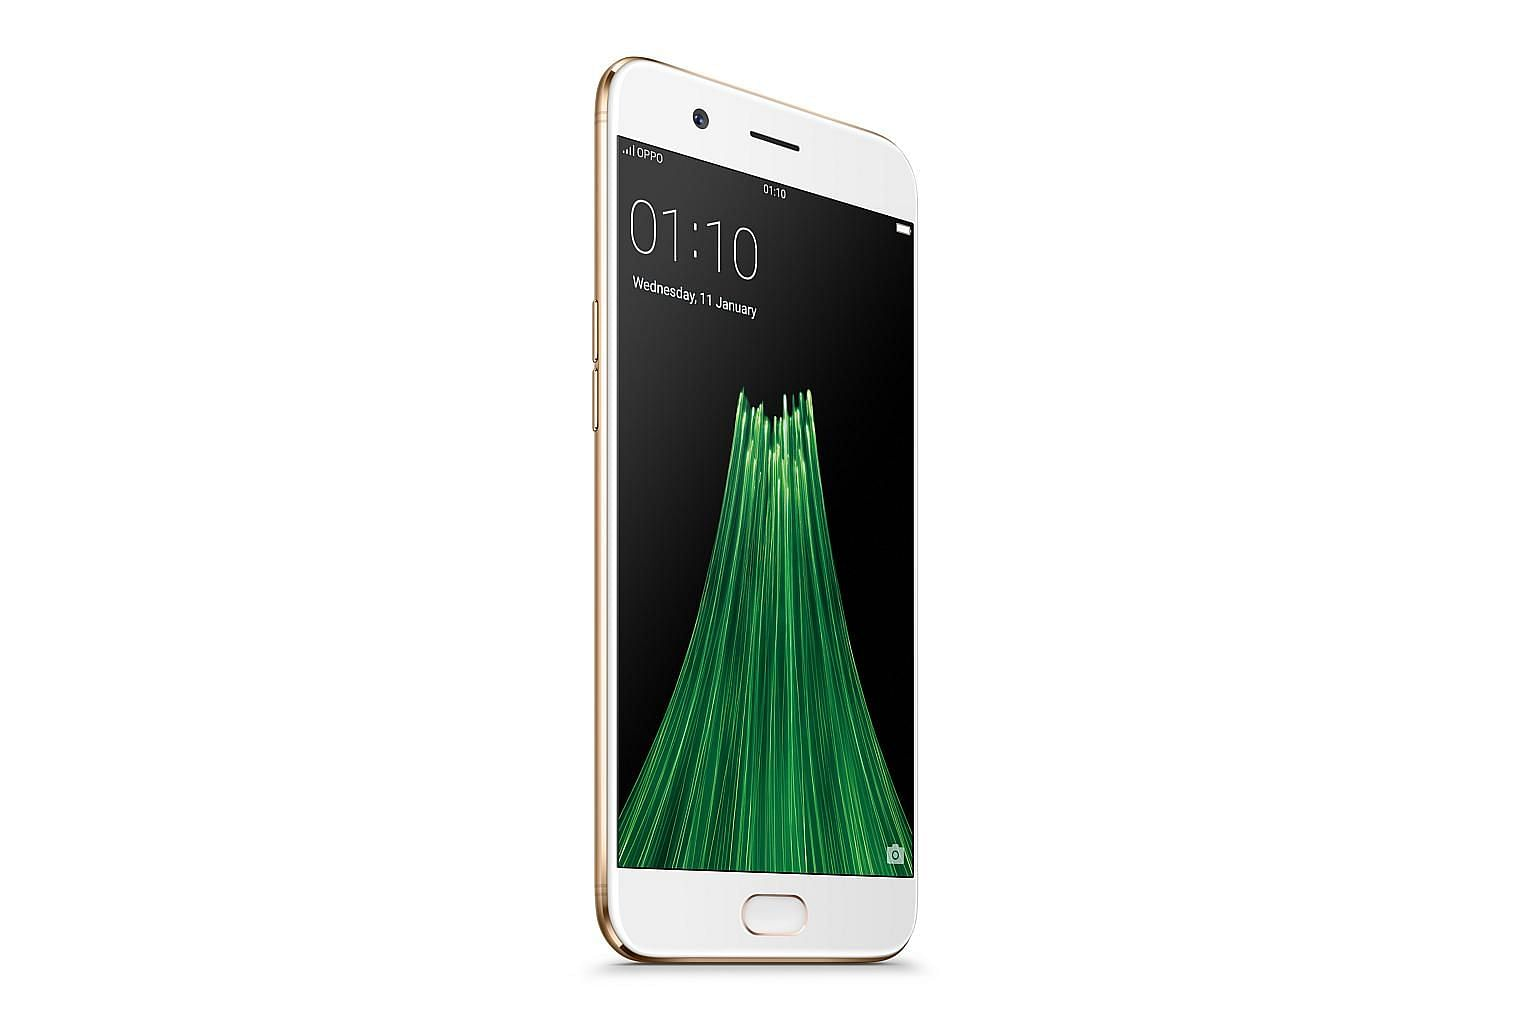 The R11 is Oppo's 2017 flagship phone. In photos taken by its front camera, subjects are sharp, auto-focus is quick and picture quality is great when viewed on smartphones or apps like Instagram.